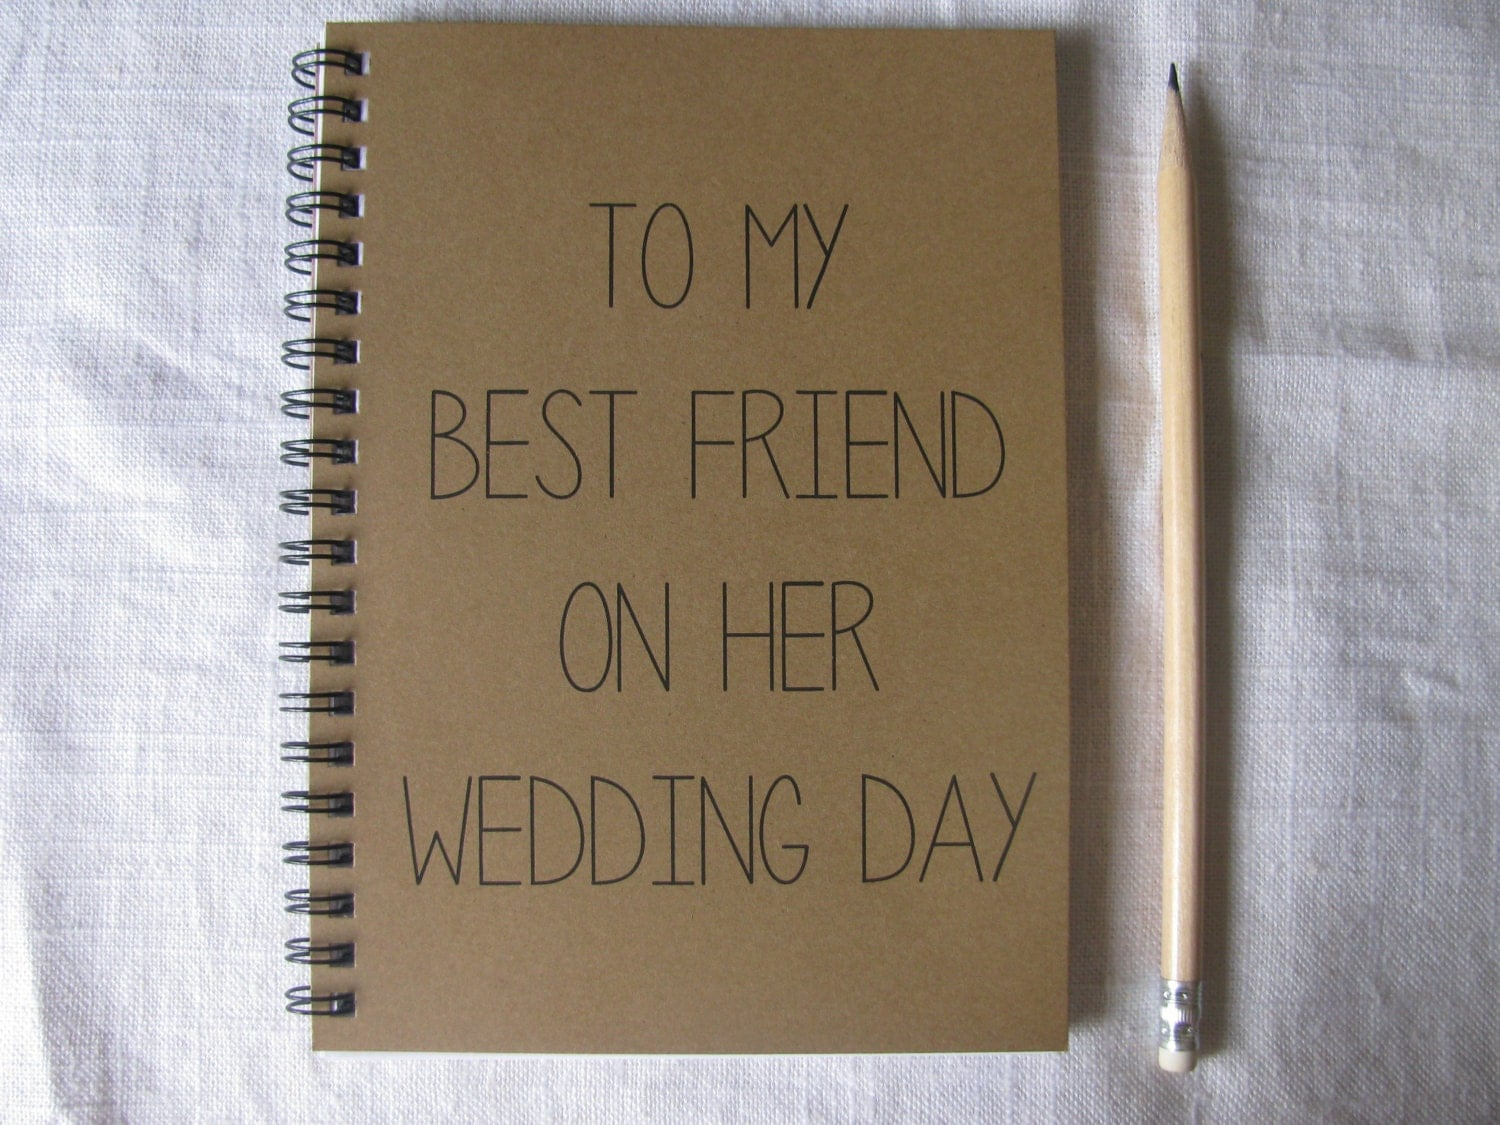 Gifts For Bride On Wedding Day From Bridesmaid: To My Best Friend On Her Wedding Day 5 X 7 By JournalingJane